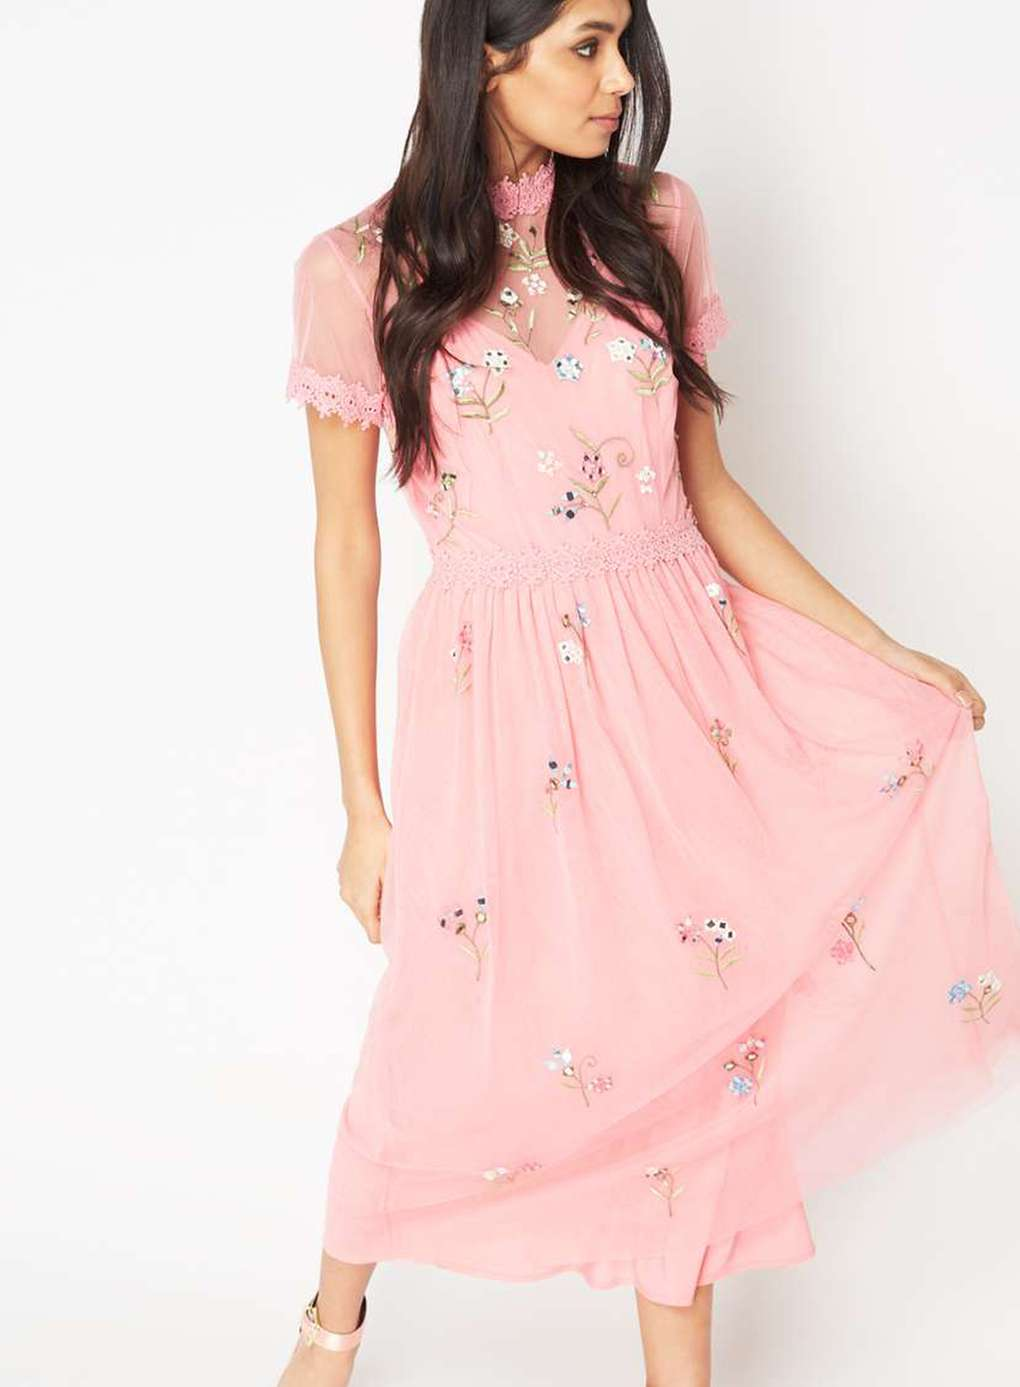 The Beguiled Style I Miss Selfridge Pink Embroidered Dress